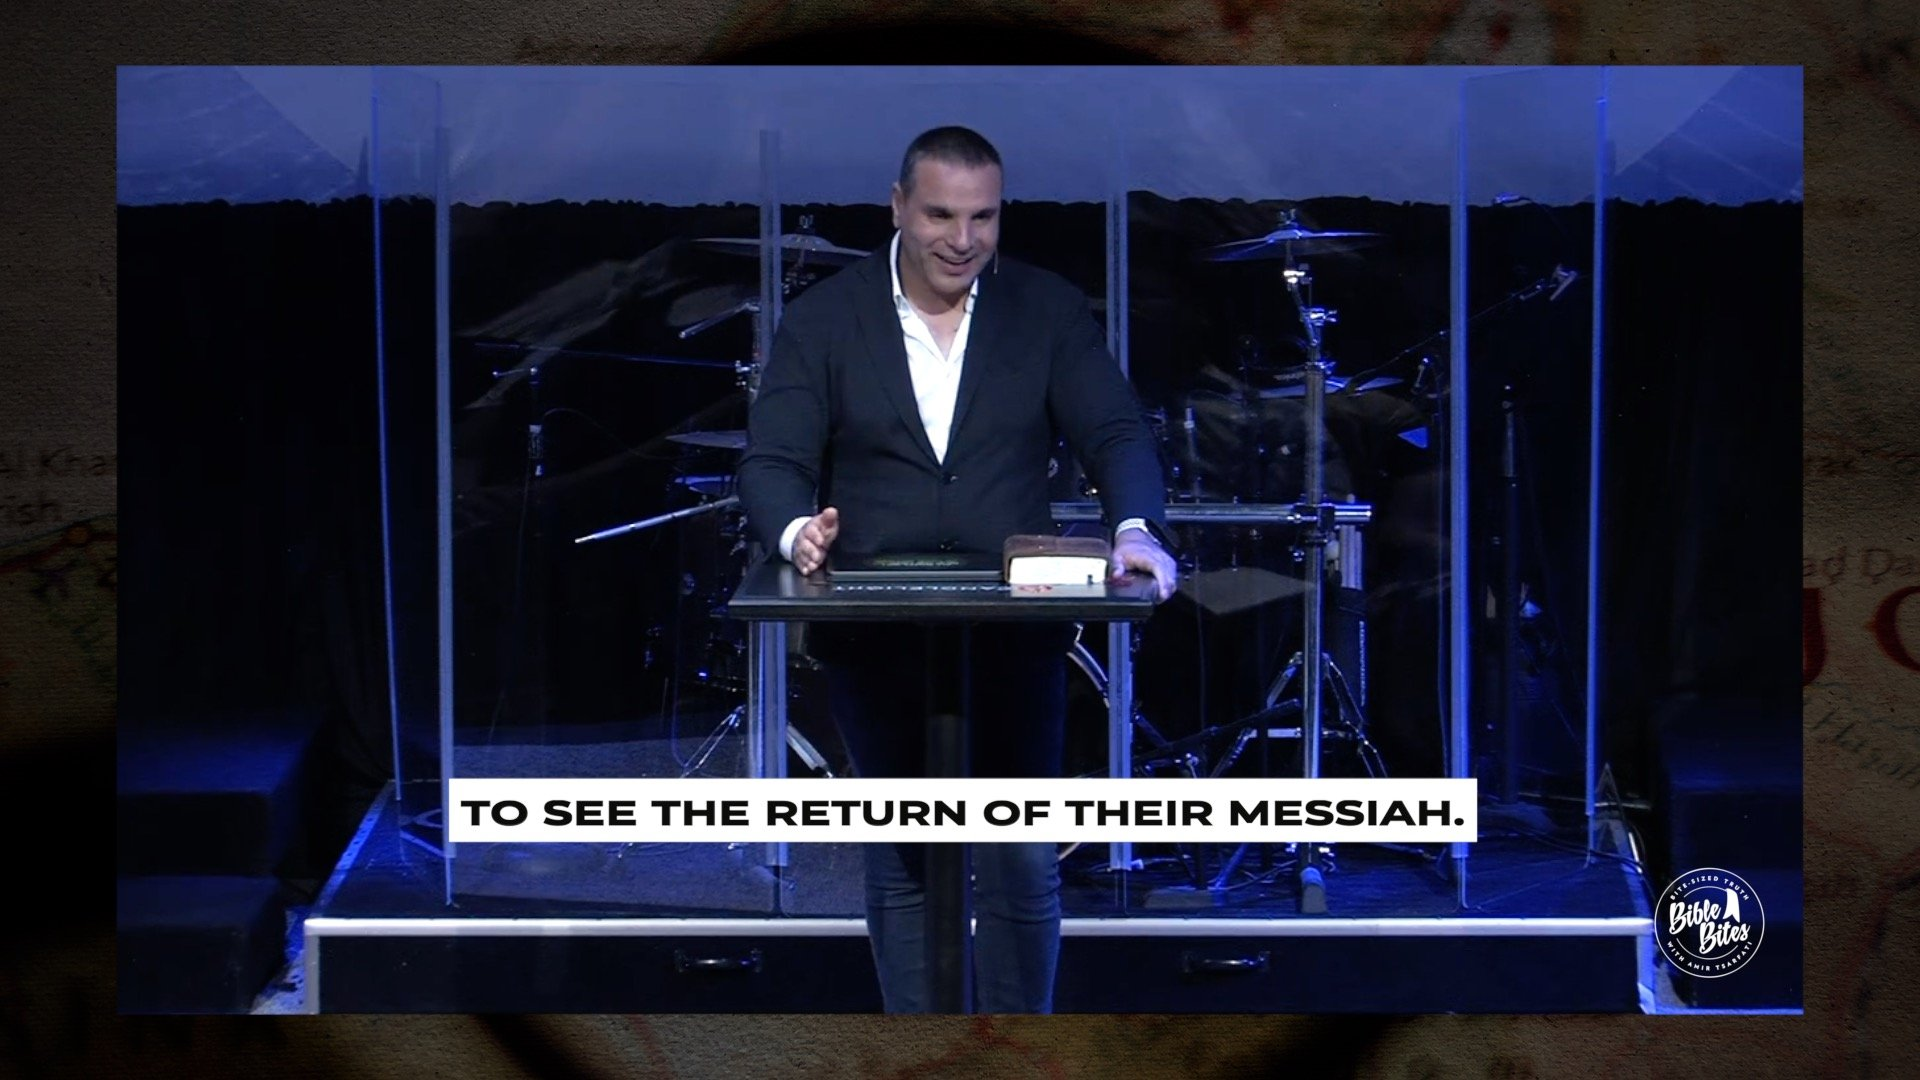 What Does Israel's Return Mean to You?